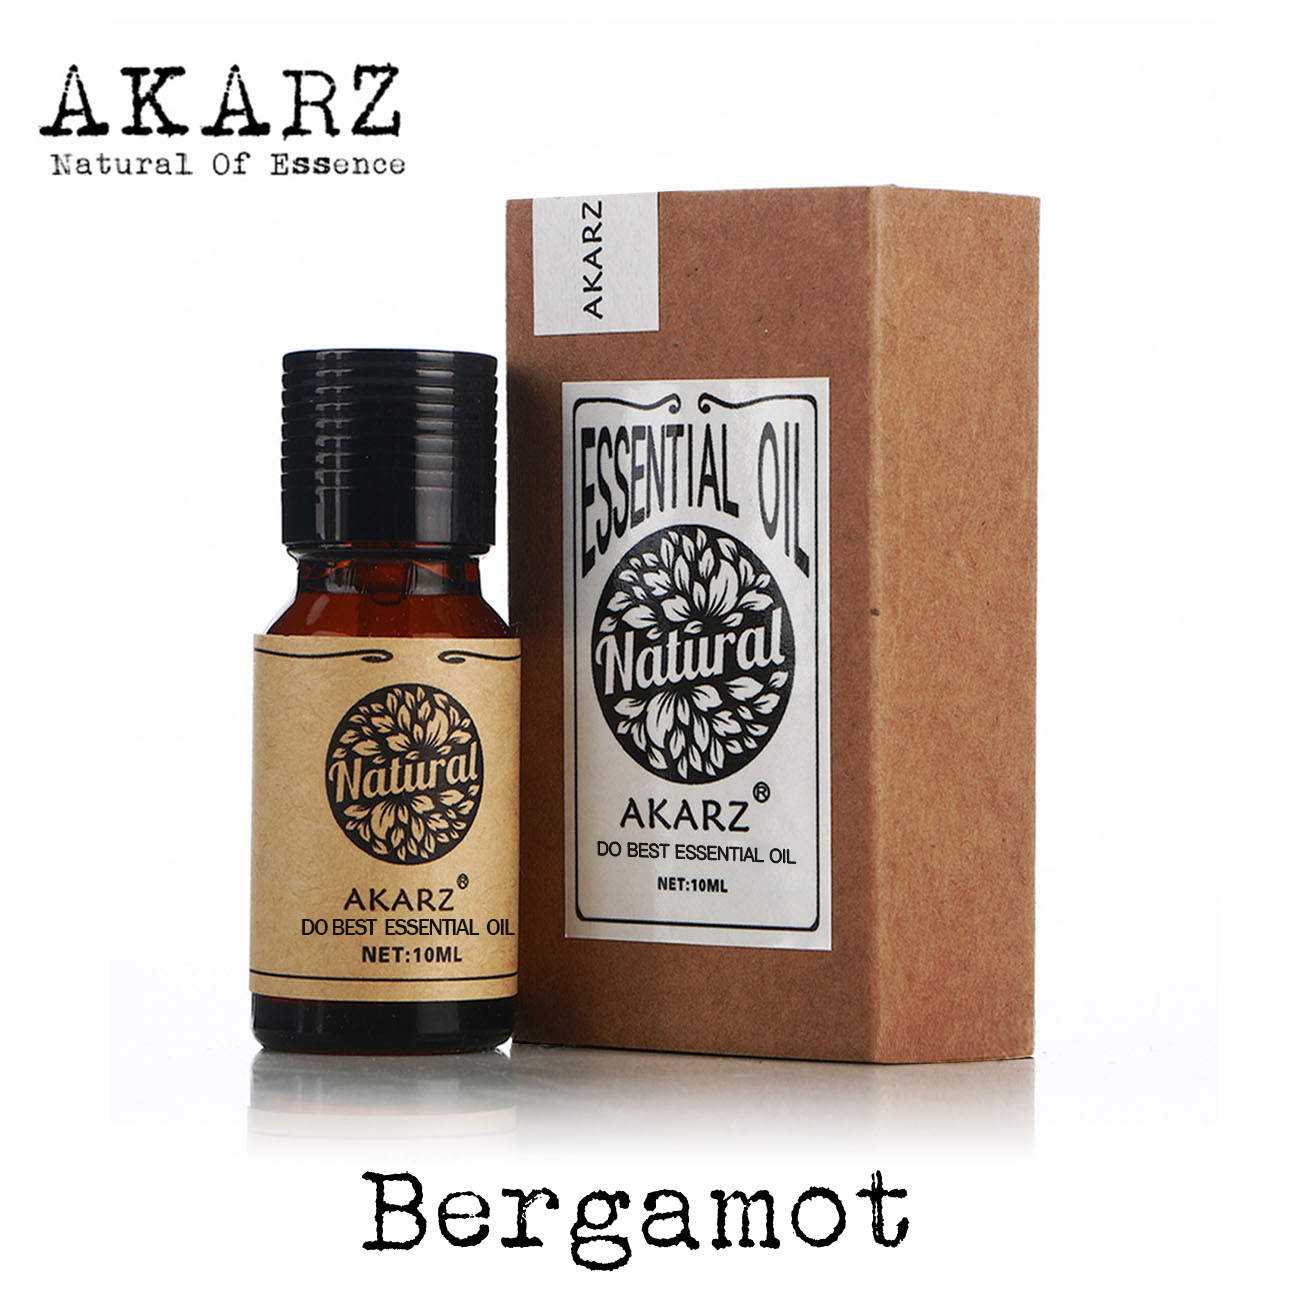 Bergamot Essential Oil AKARZ Brand Natural Oiliness Cosmetics Candle Soap Scents Making DIY Odorant Raw Material Bergamot Oil